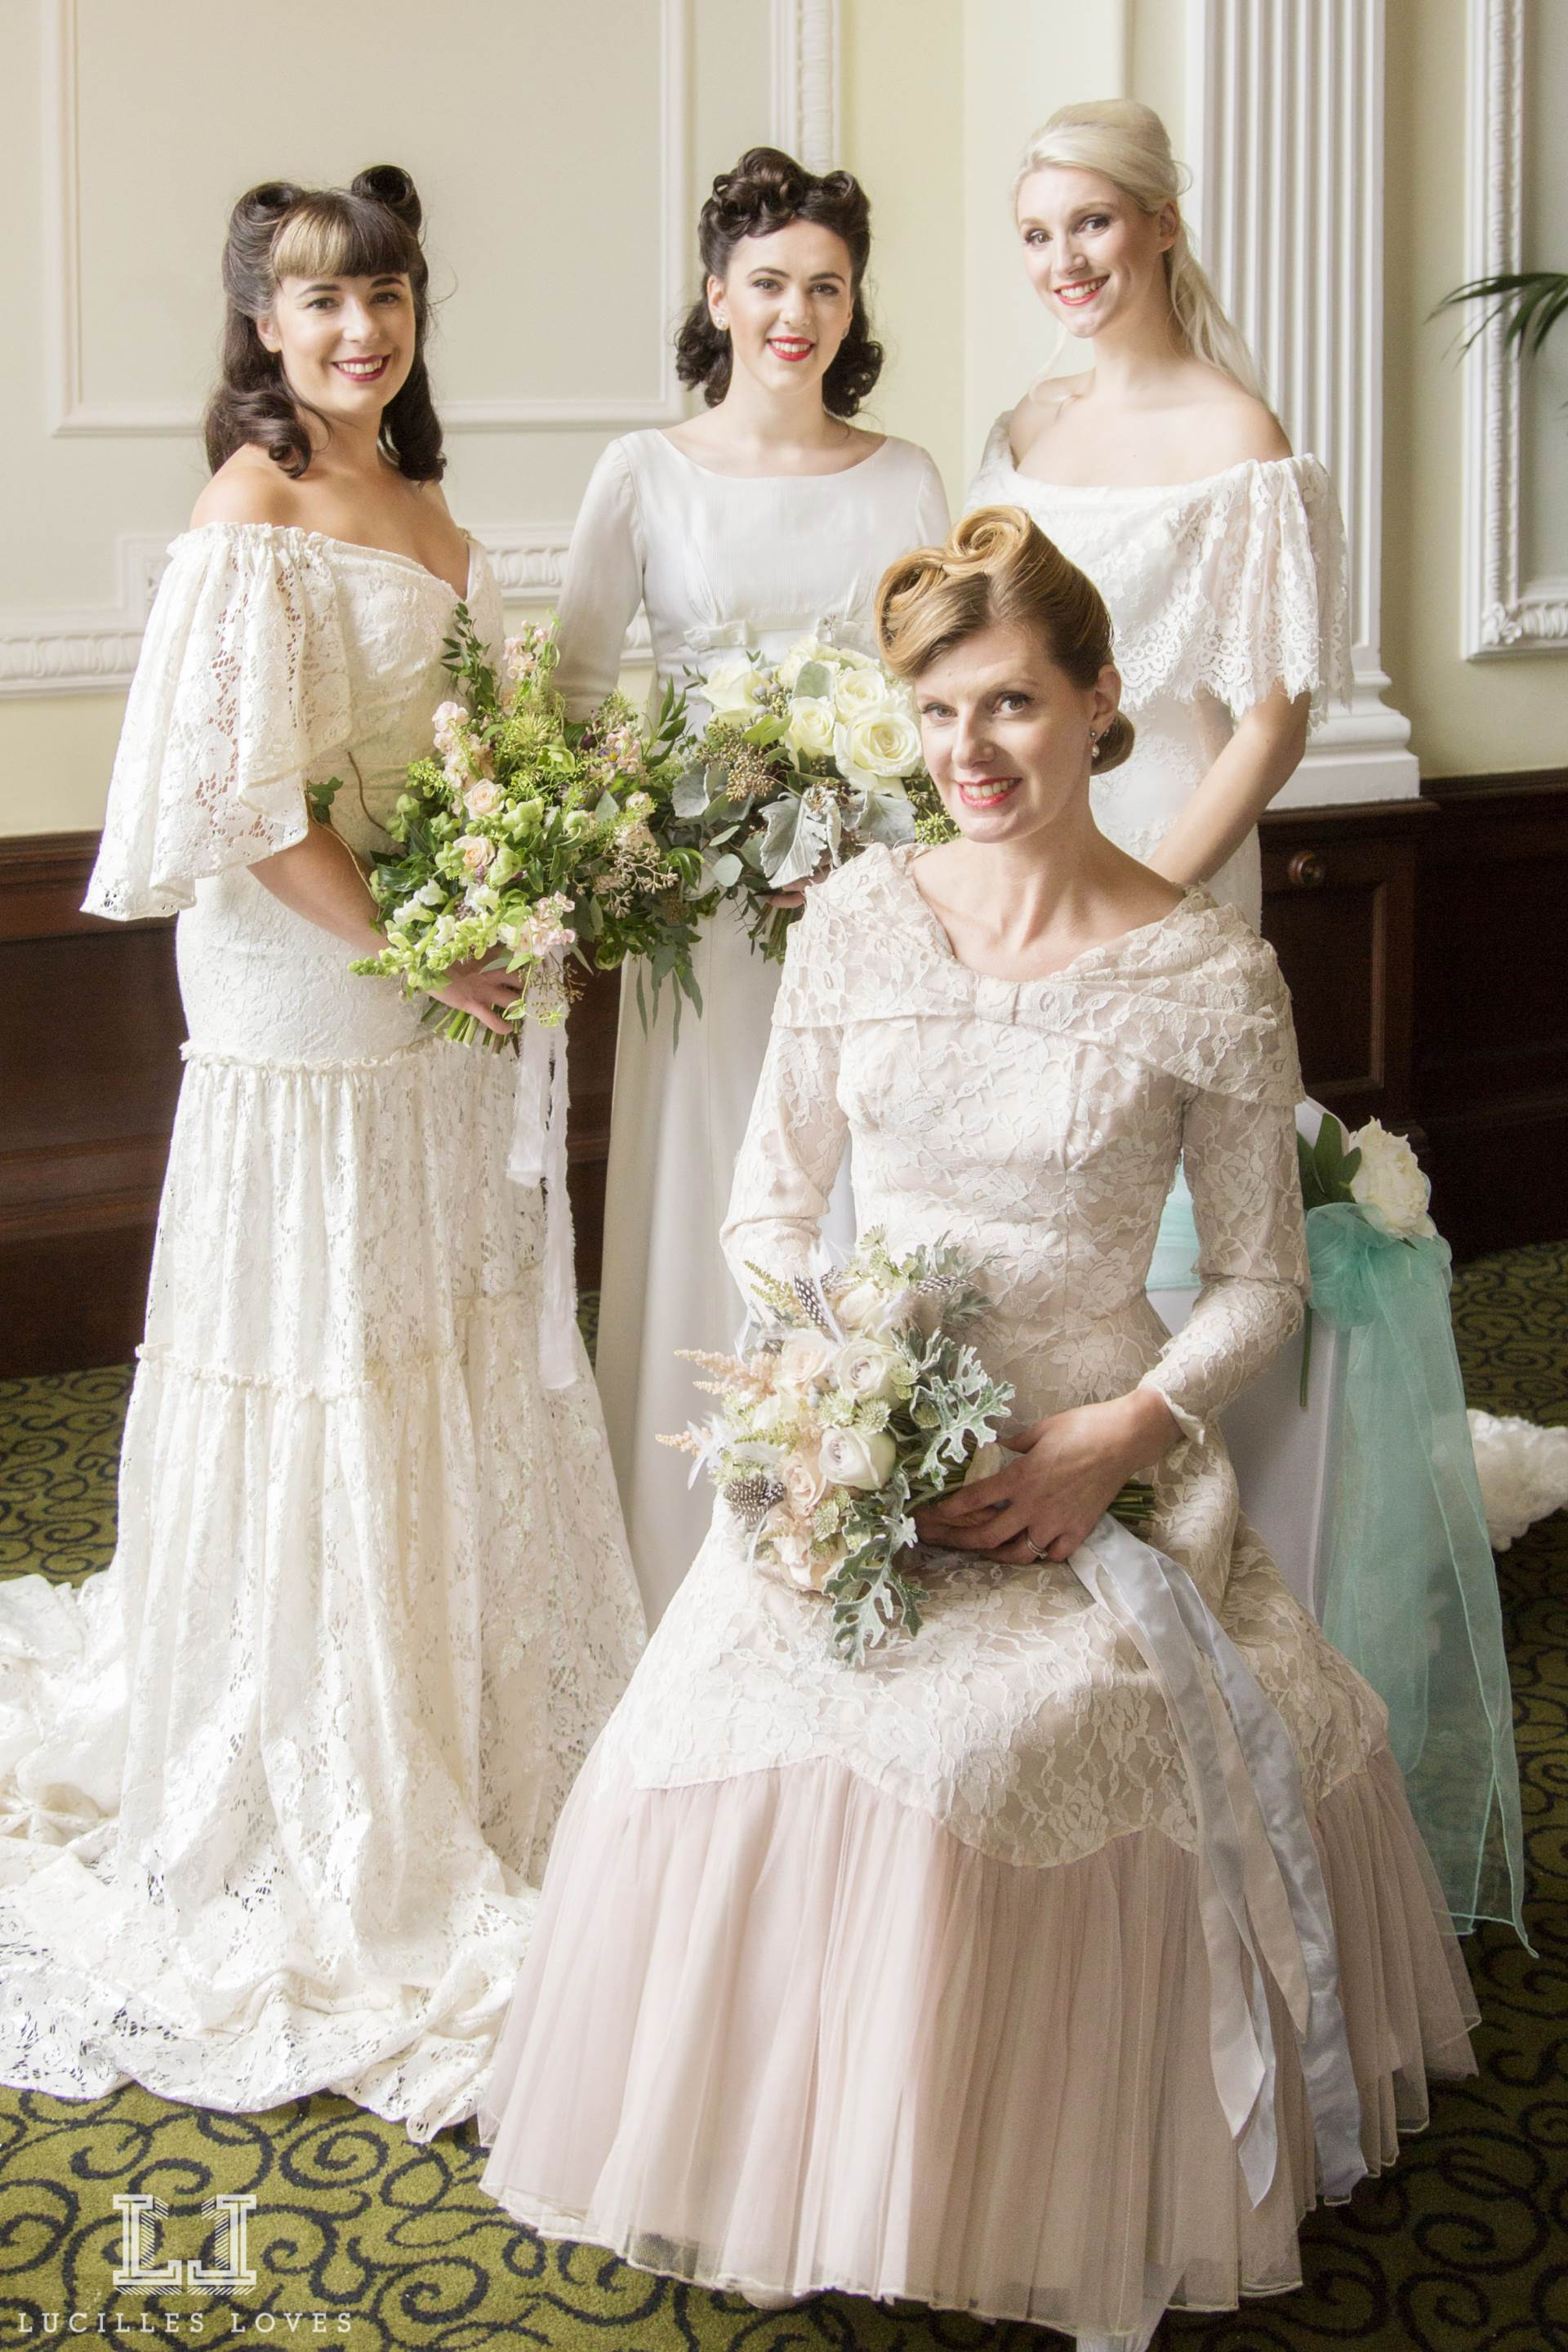 Vintage wedding dresses at Harrogate taken by Lucille Loves at The National Vintage Wedding Fair